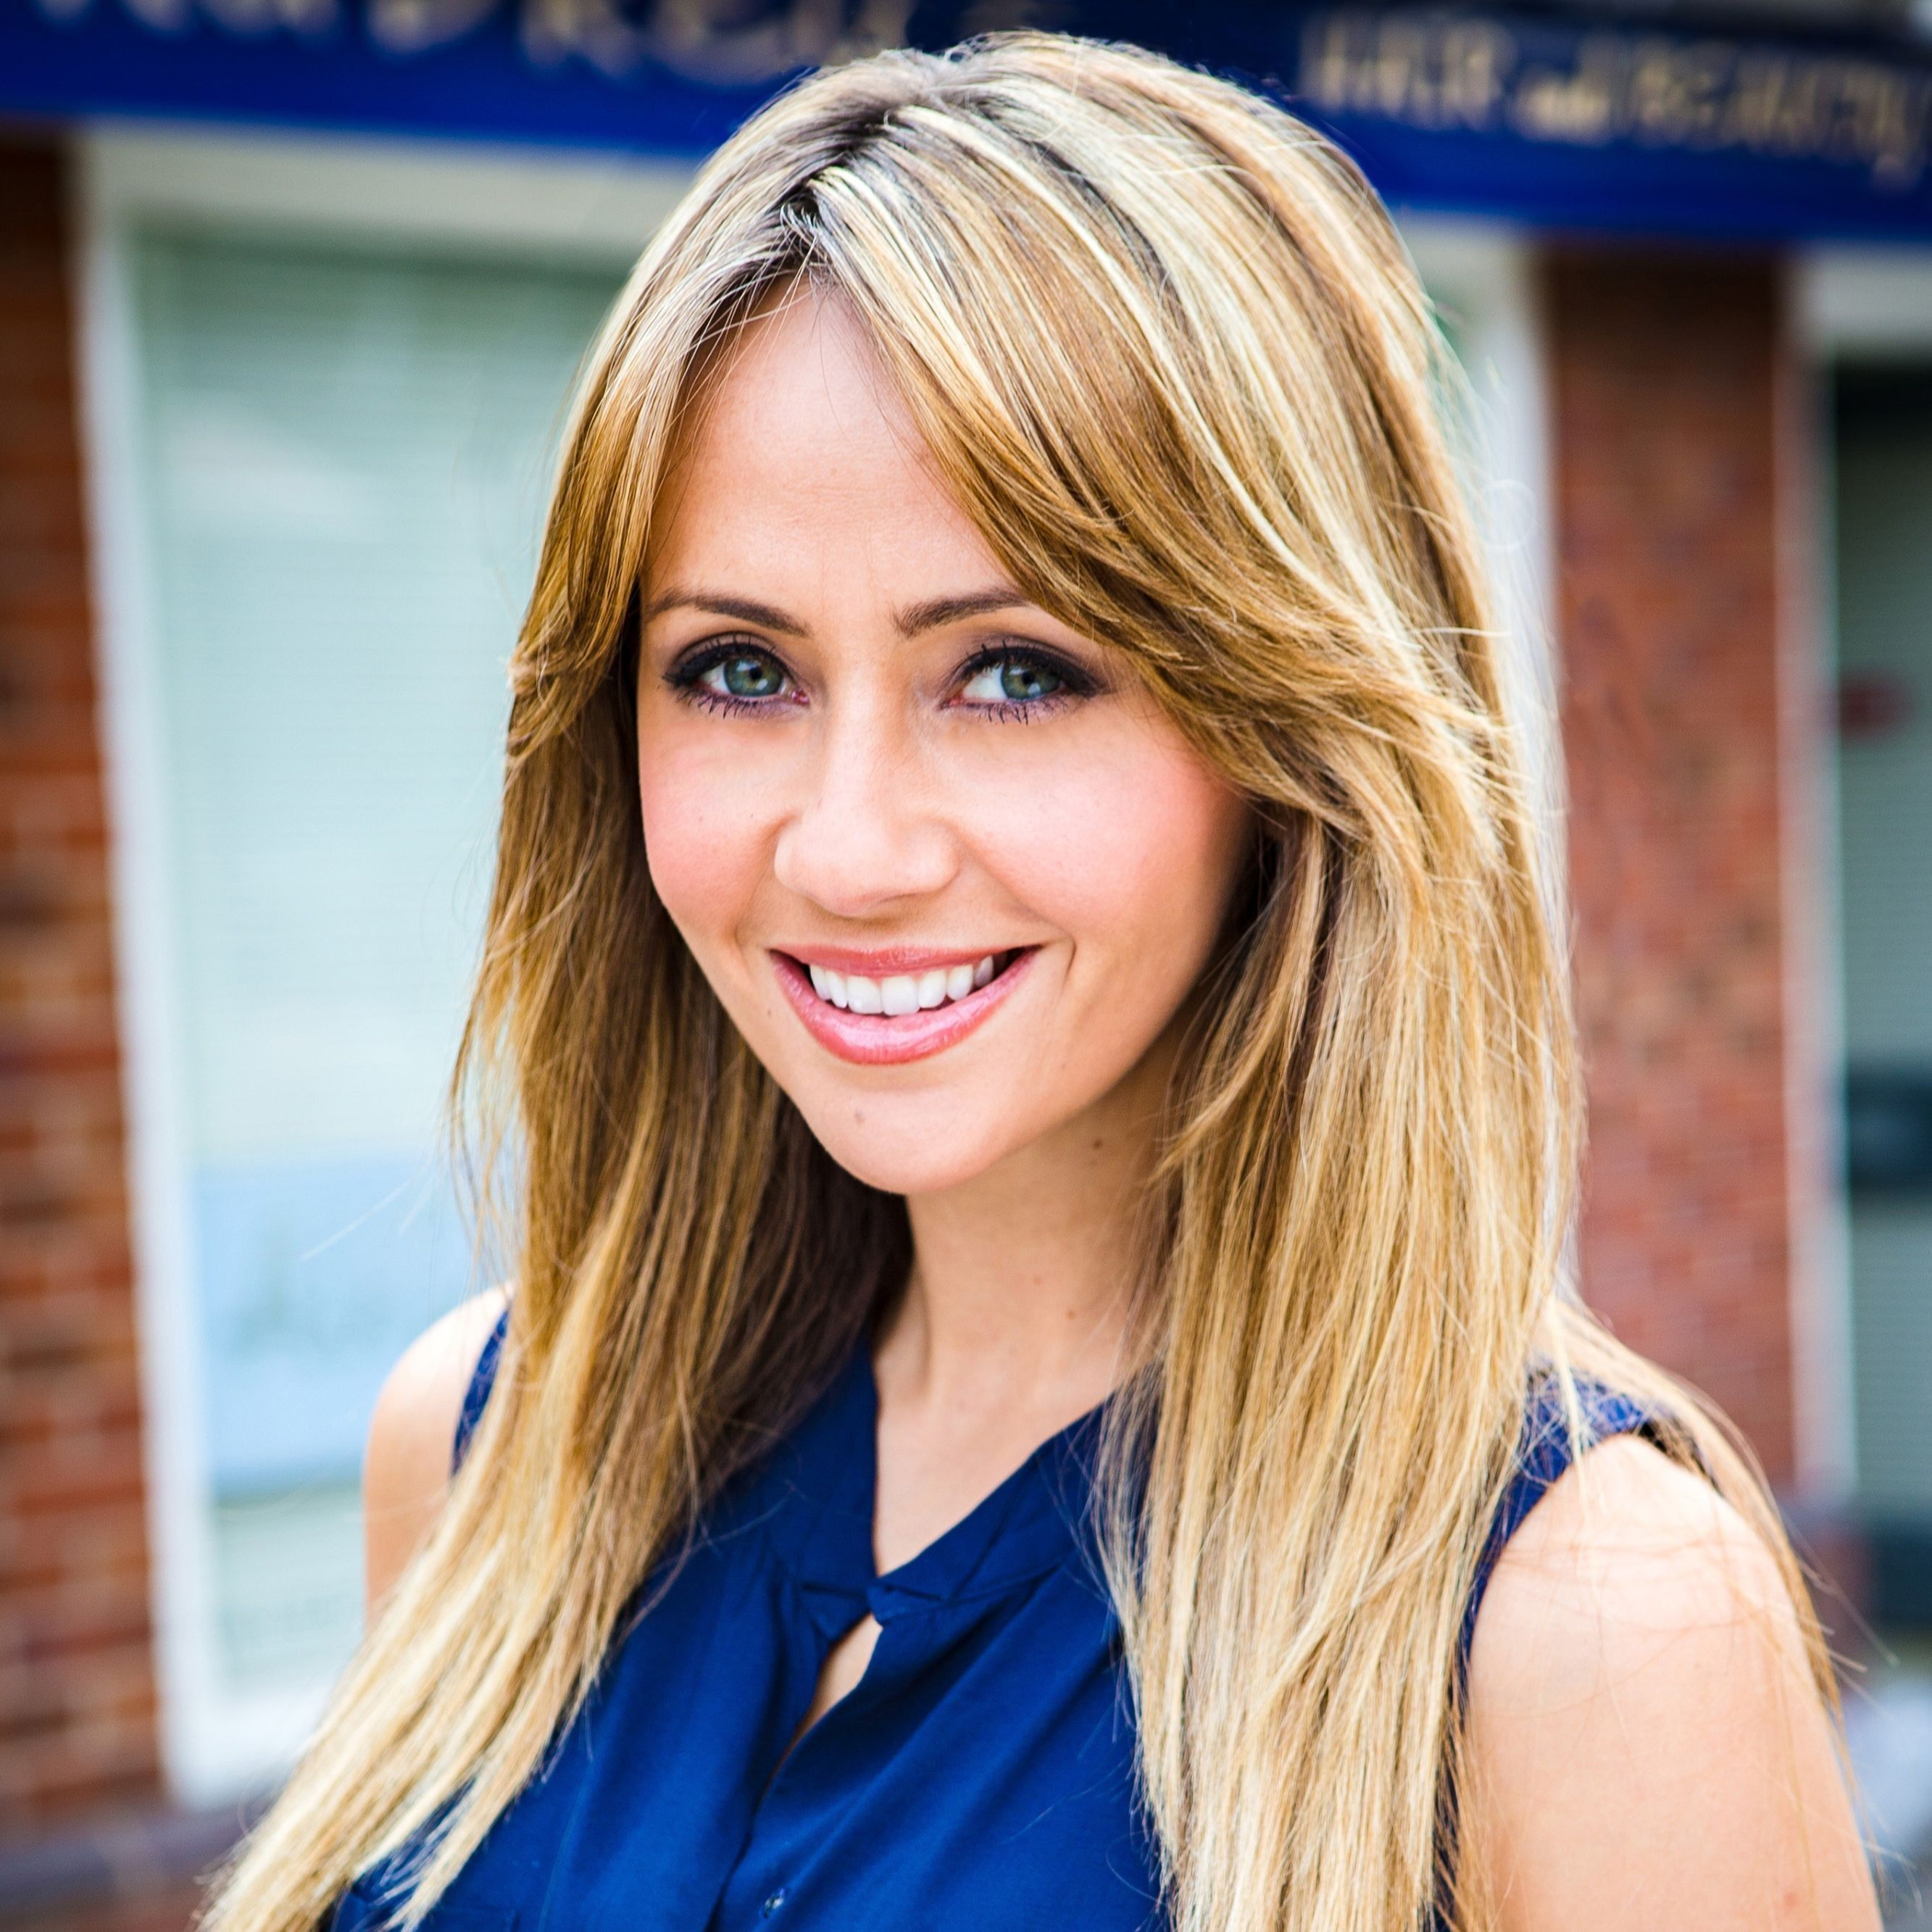 Coronation Street's Samia Longchambon reveals a secret over her history with co-star Andrew Whyment